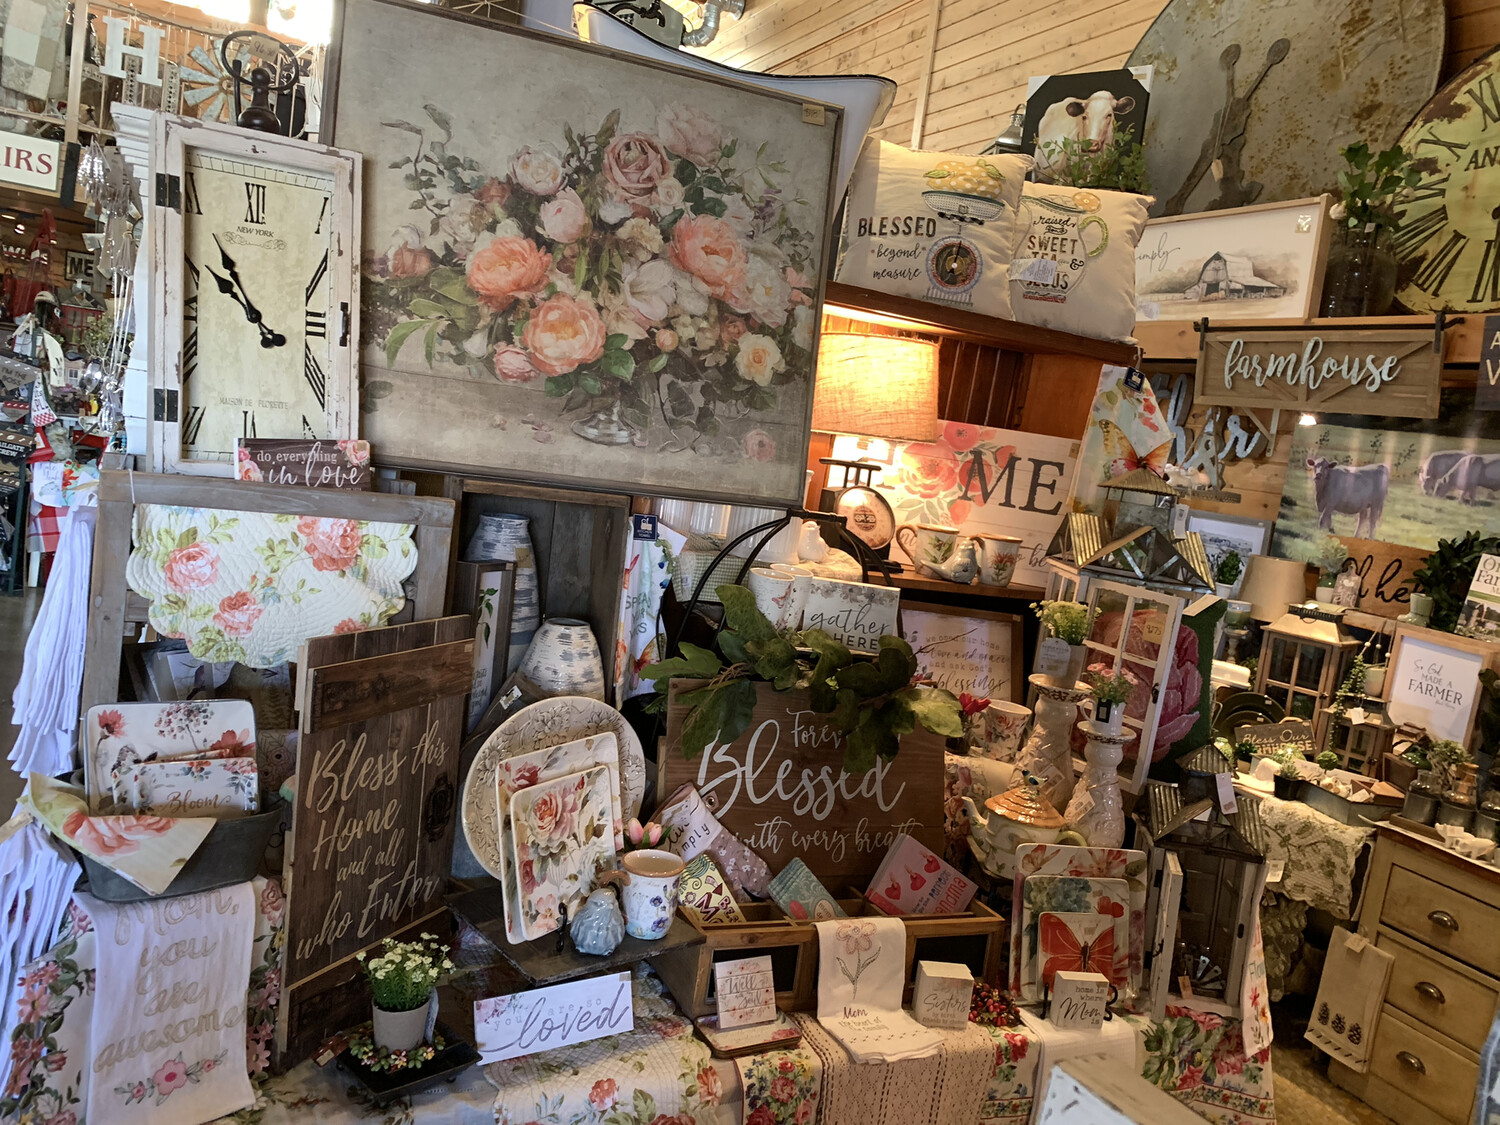 Display: Mother's Day/Spring Floral